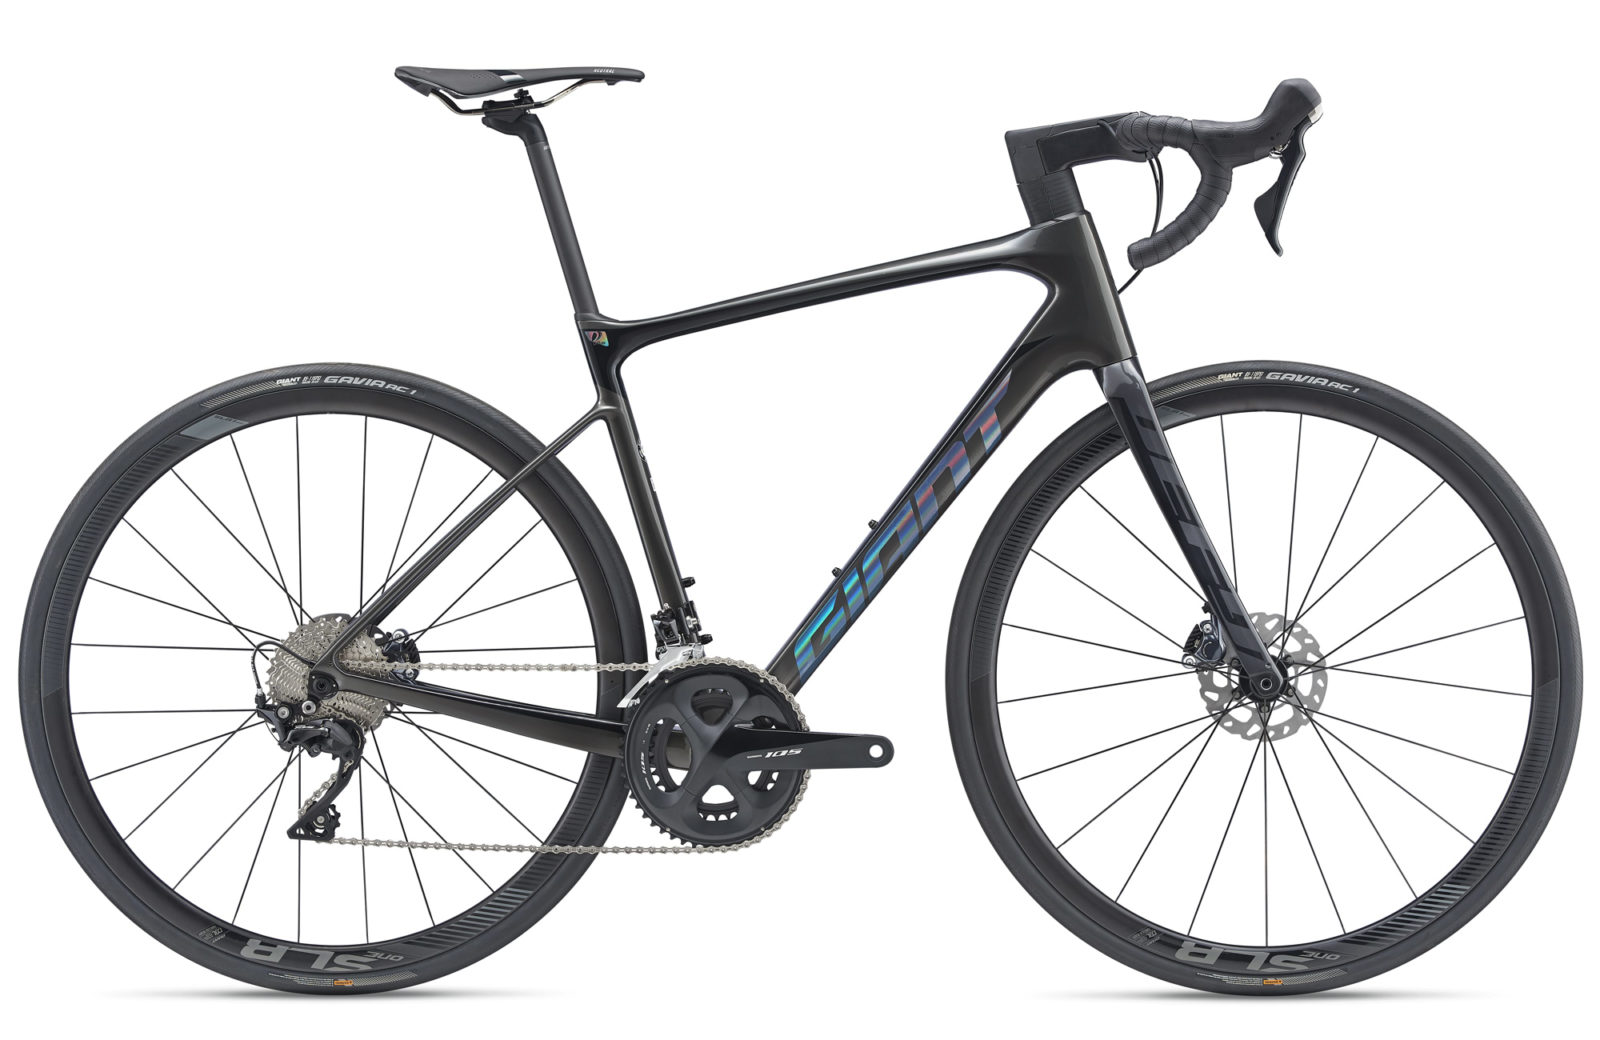 Giant Rennrad Defy Advanced Pro 2 2019